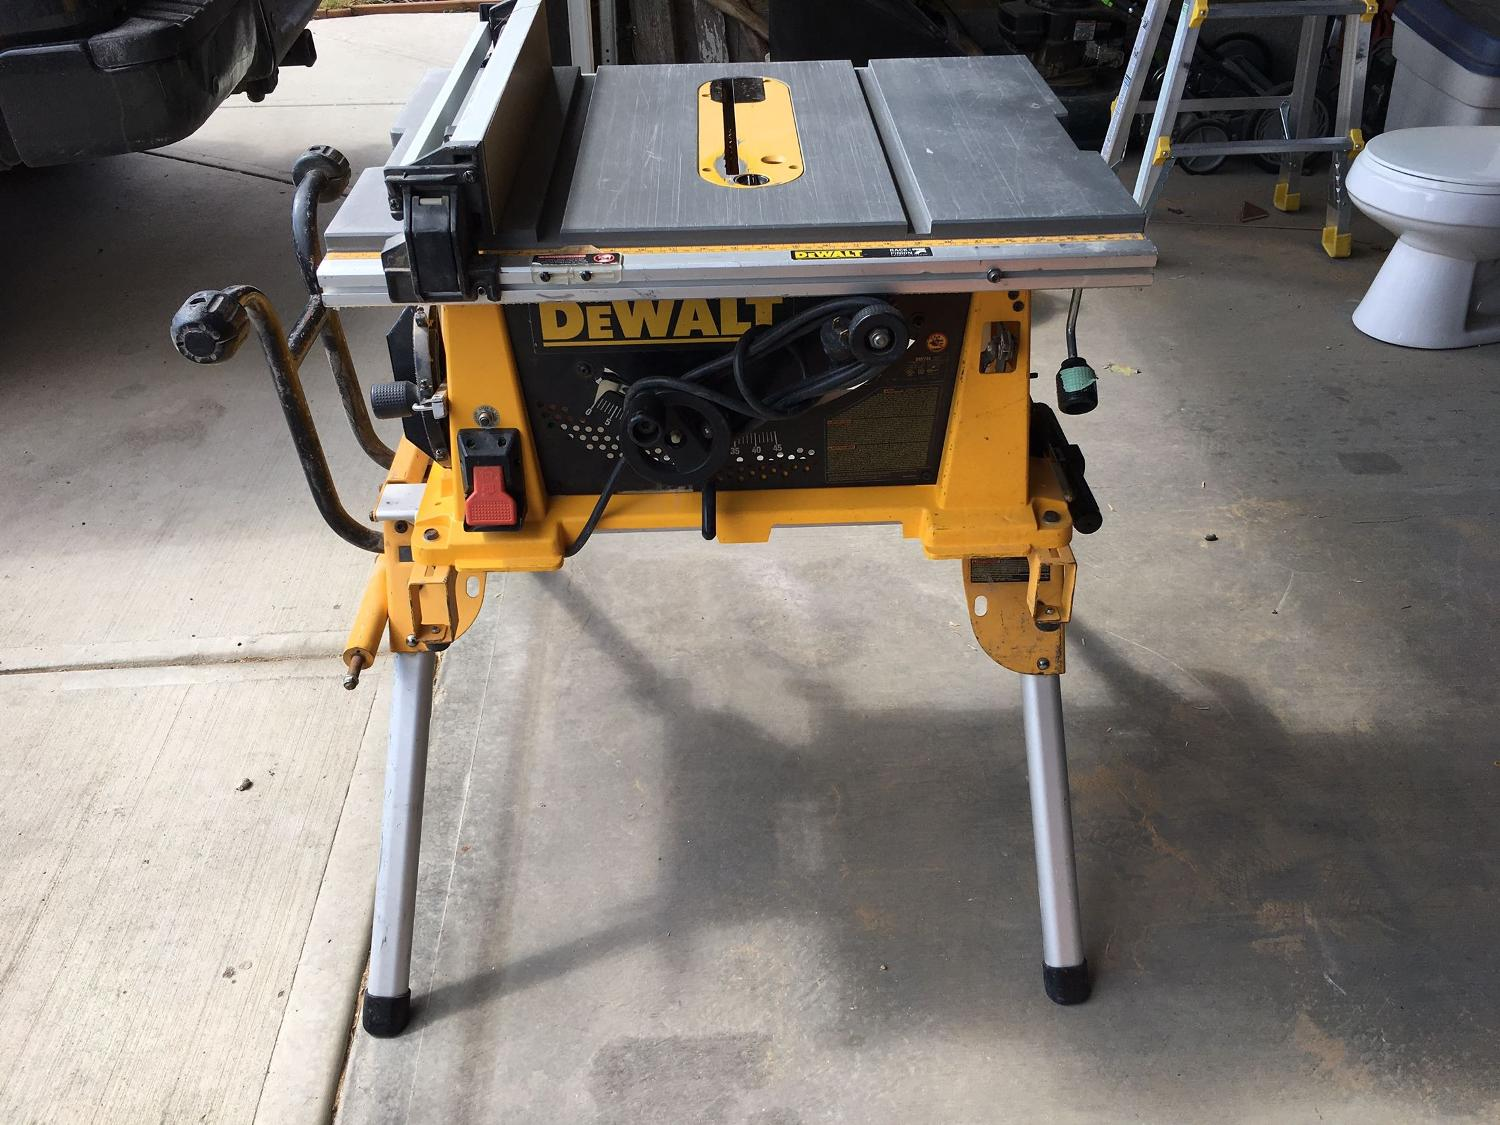 Find More Dewalt Portable Table Saw For Sale At Up To 90 Off Airdrie Ab